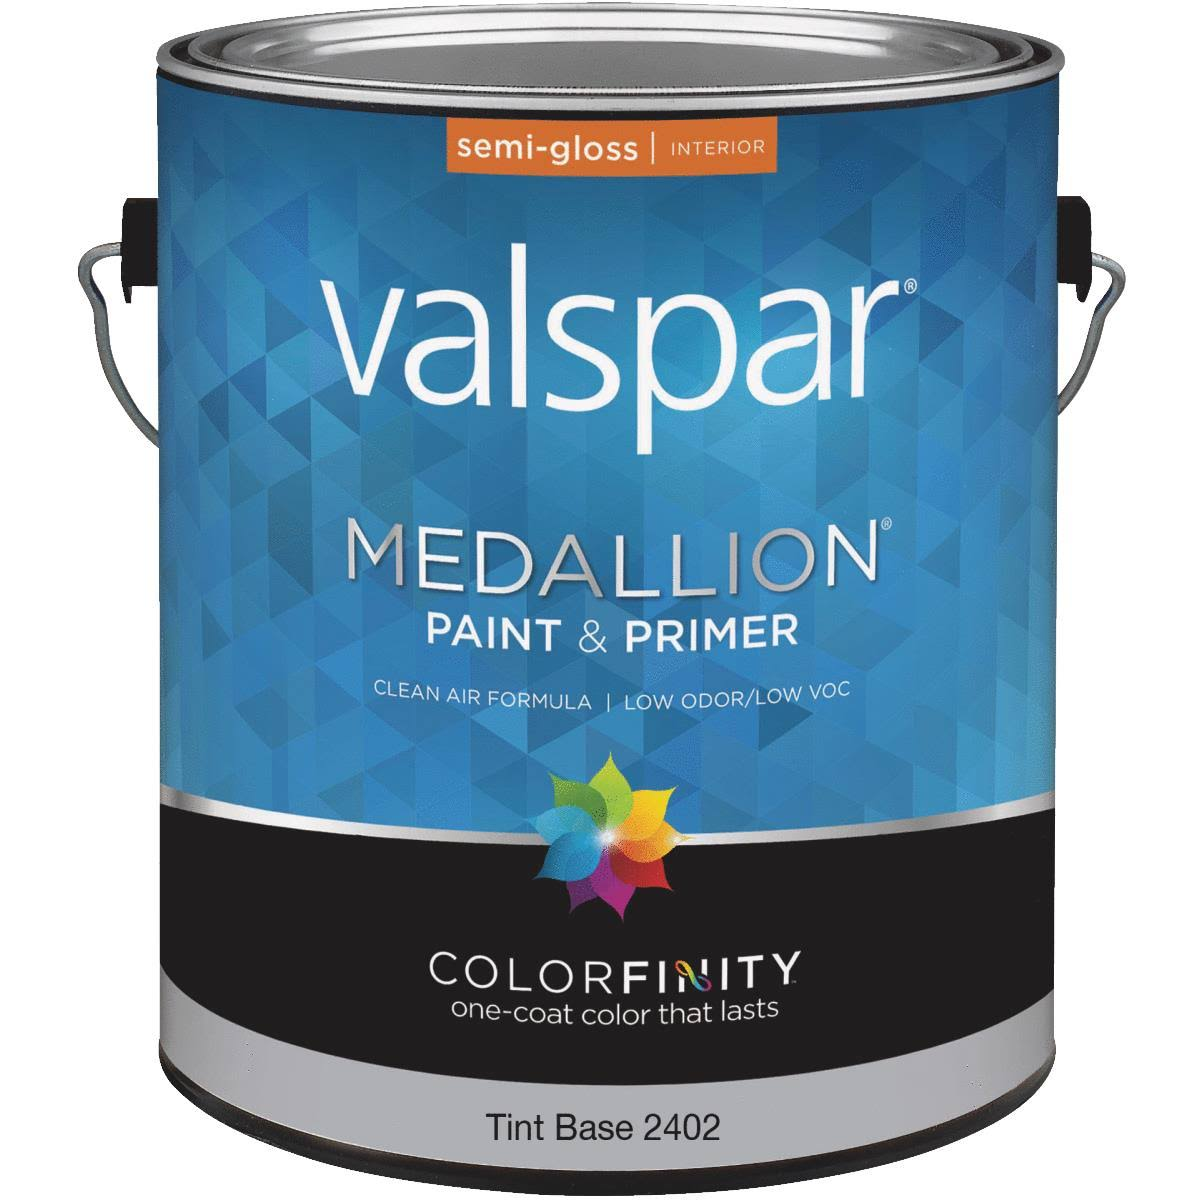 Valspar Medallion 100% Acrylic Interior Latex Wall & Trim Paint - Semi-Gloss